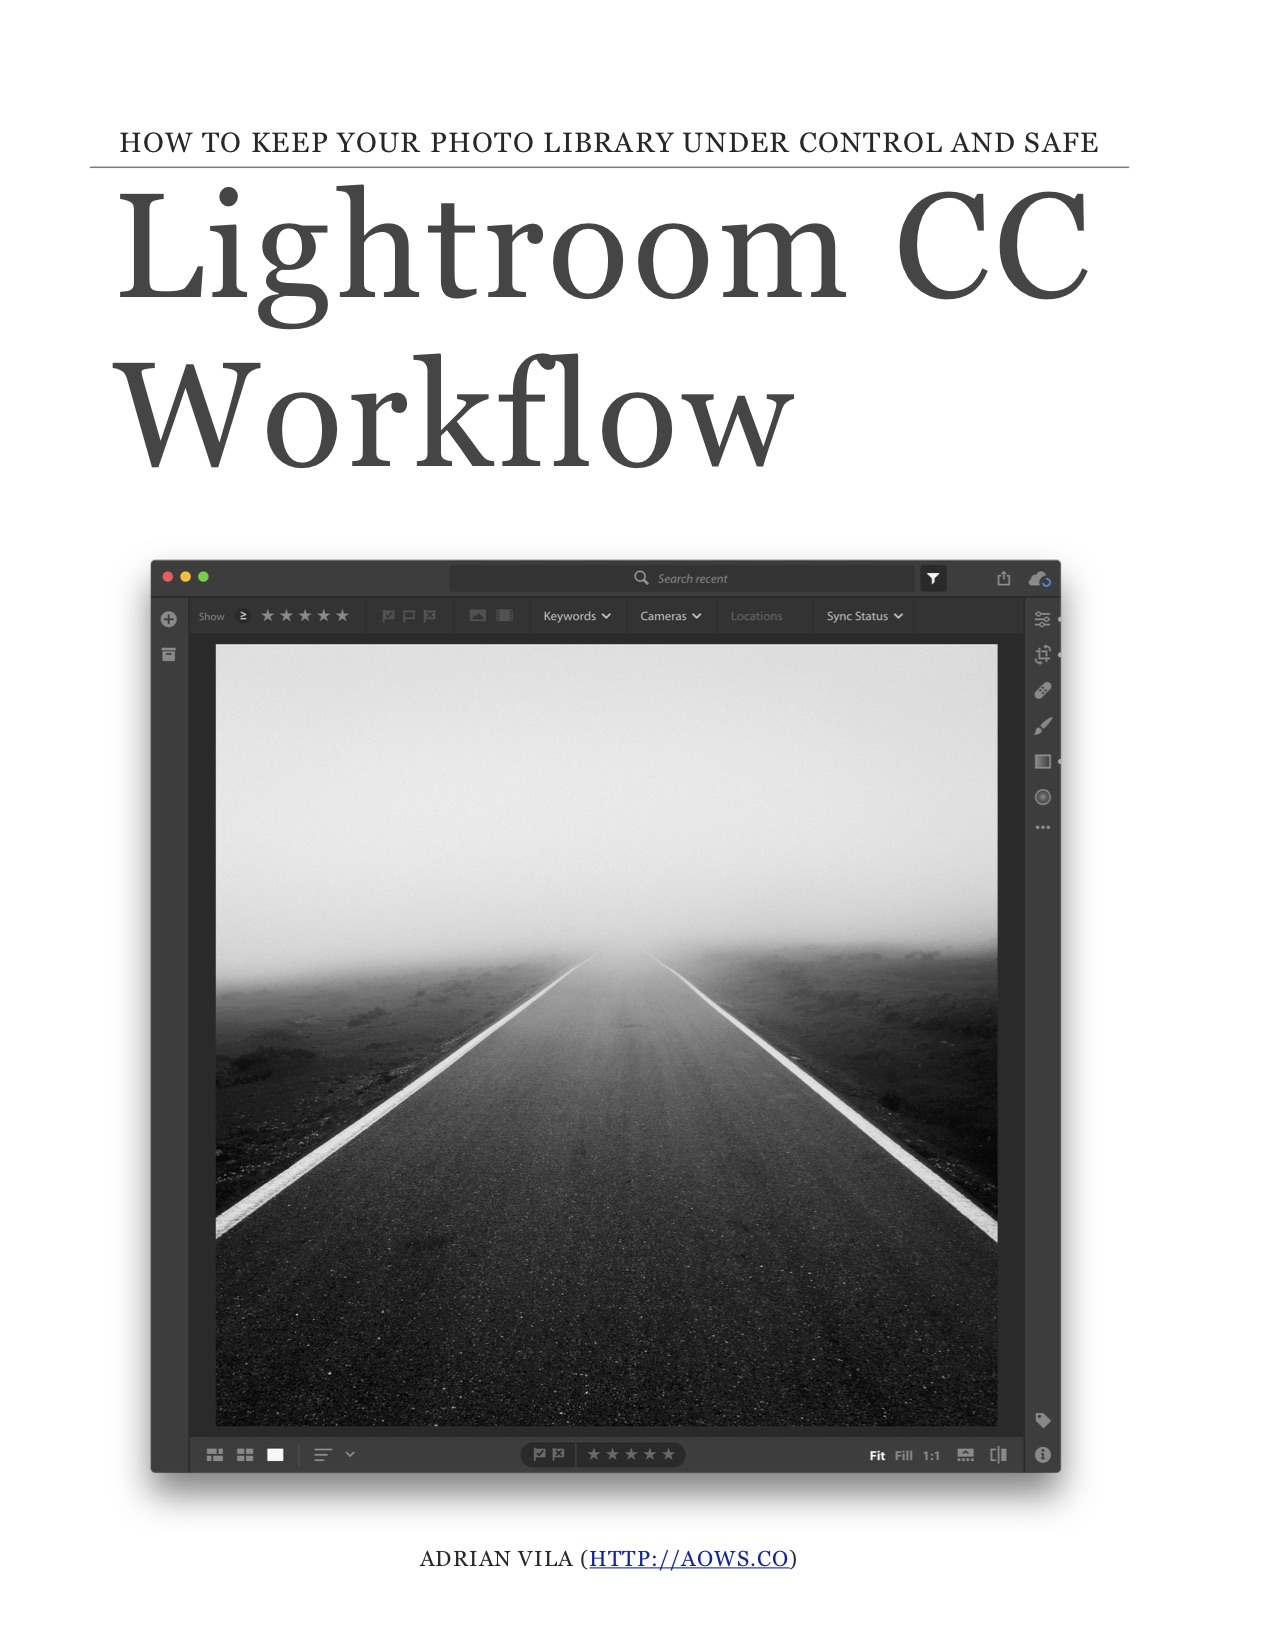 lightroom cc workflow - how to keep your photo library under control and safepublished: june 2018eBook 34 pages